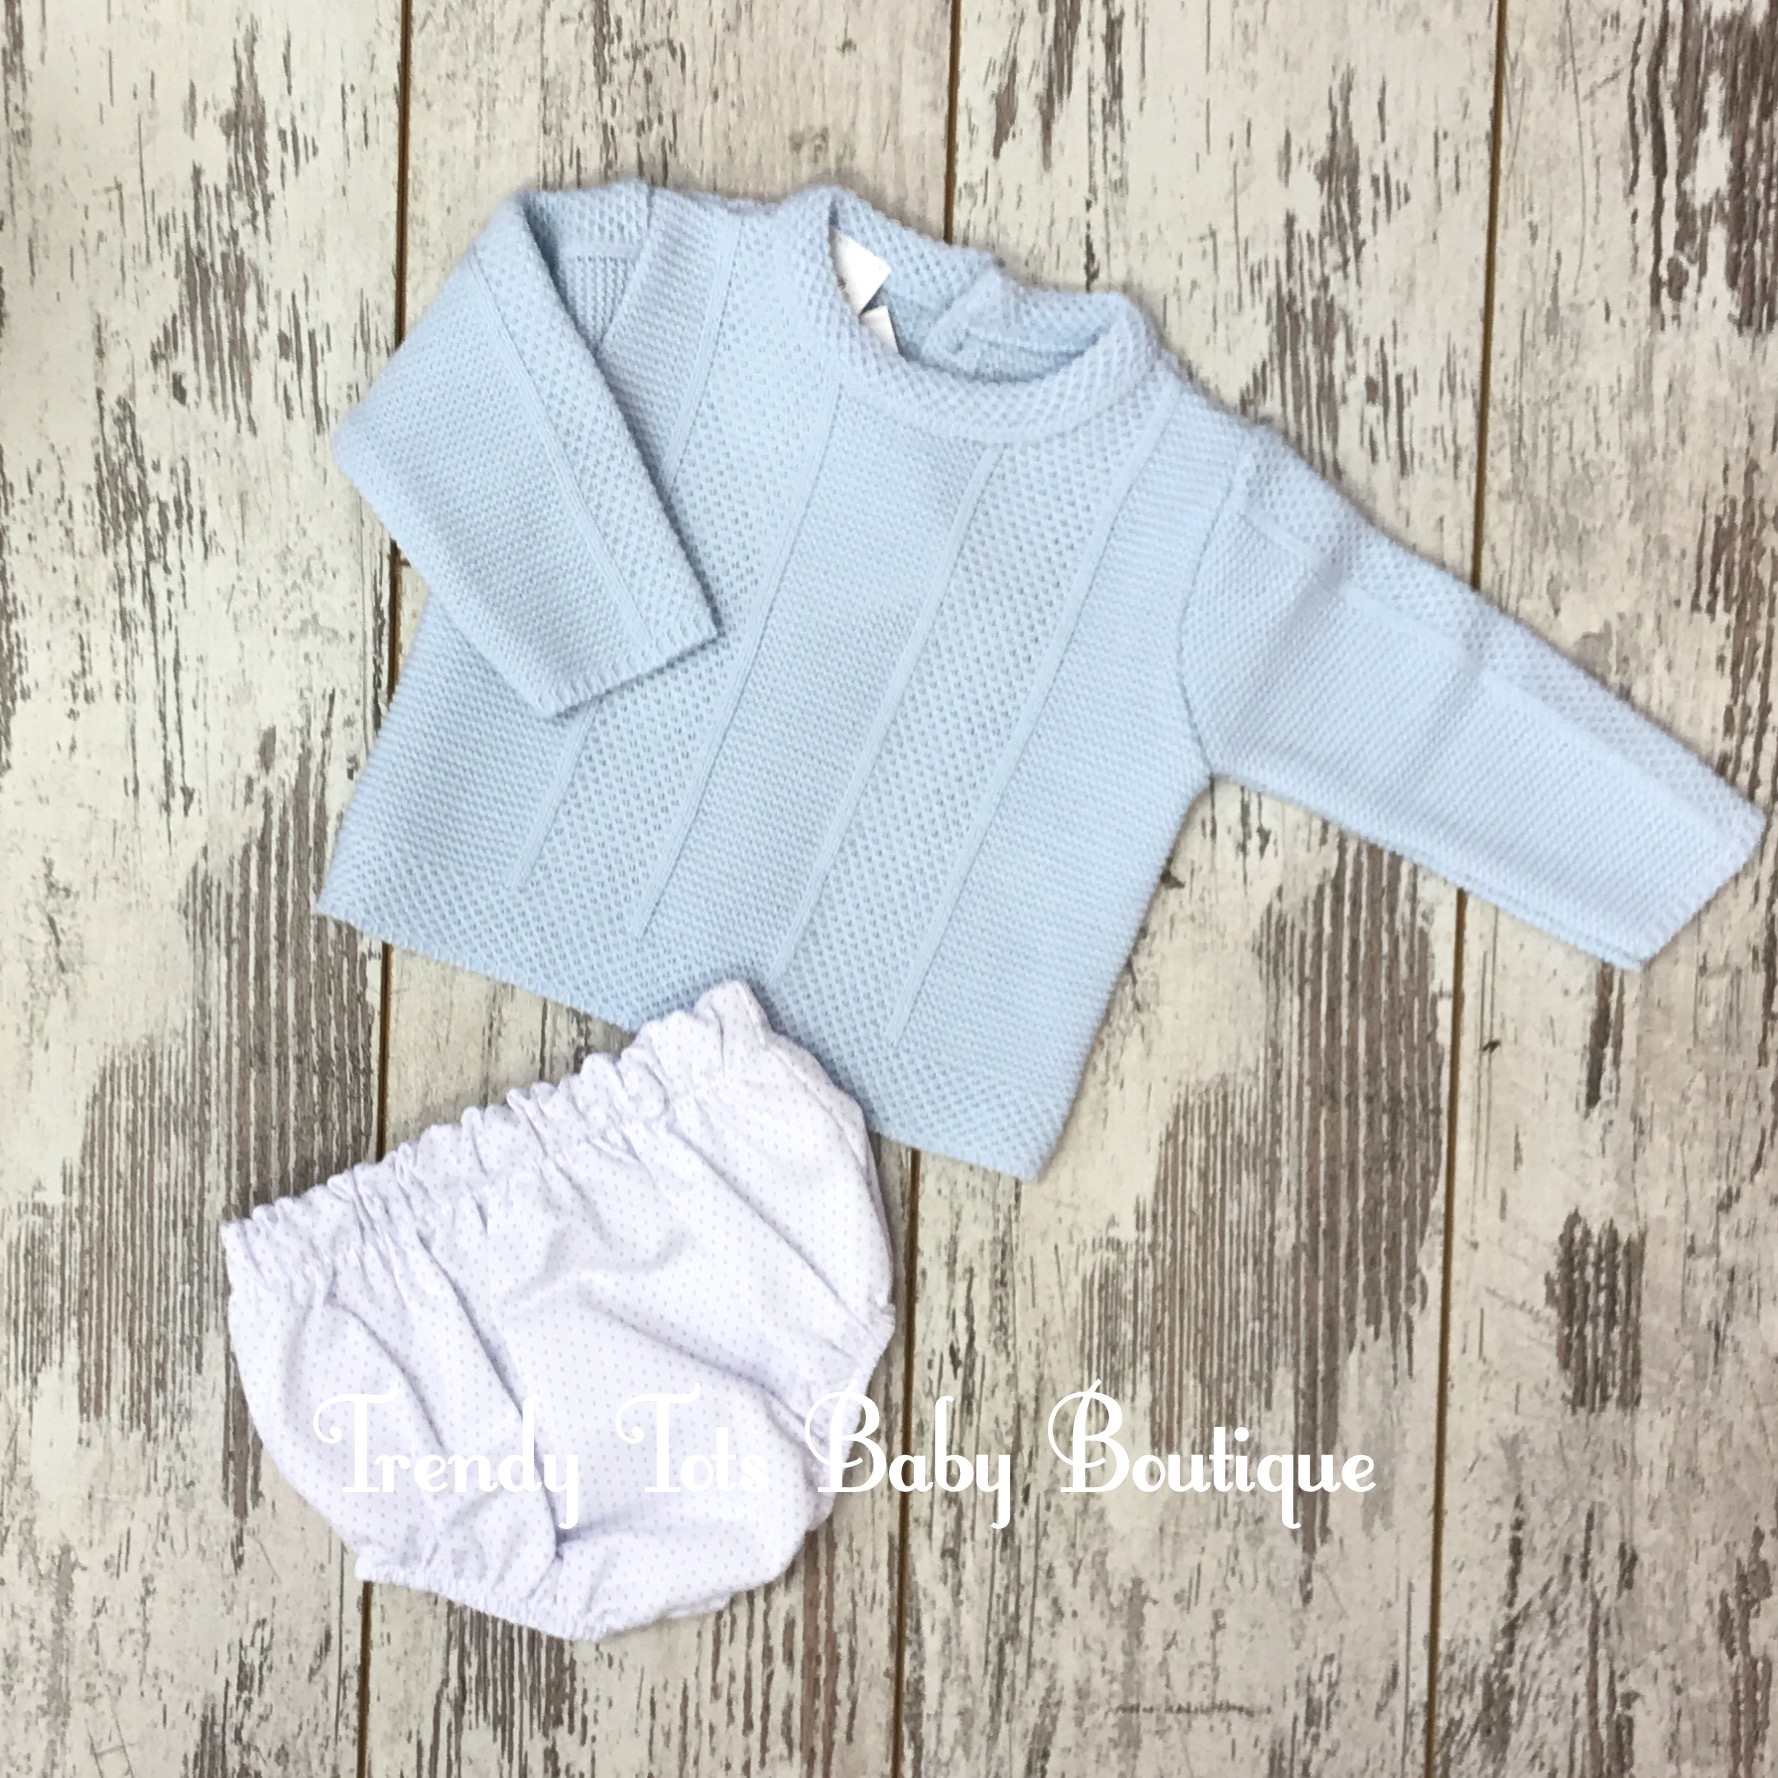 Spanish Knit Top And Jam Pants Trendy Tots Baby Boutique